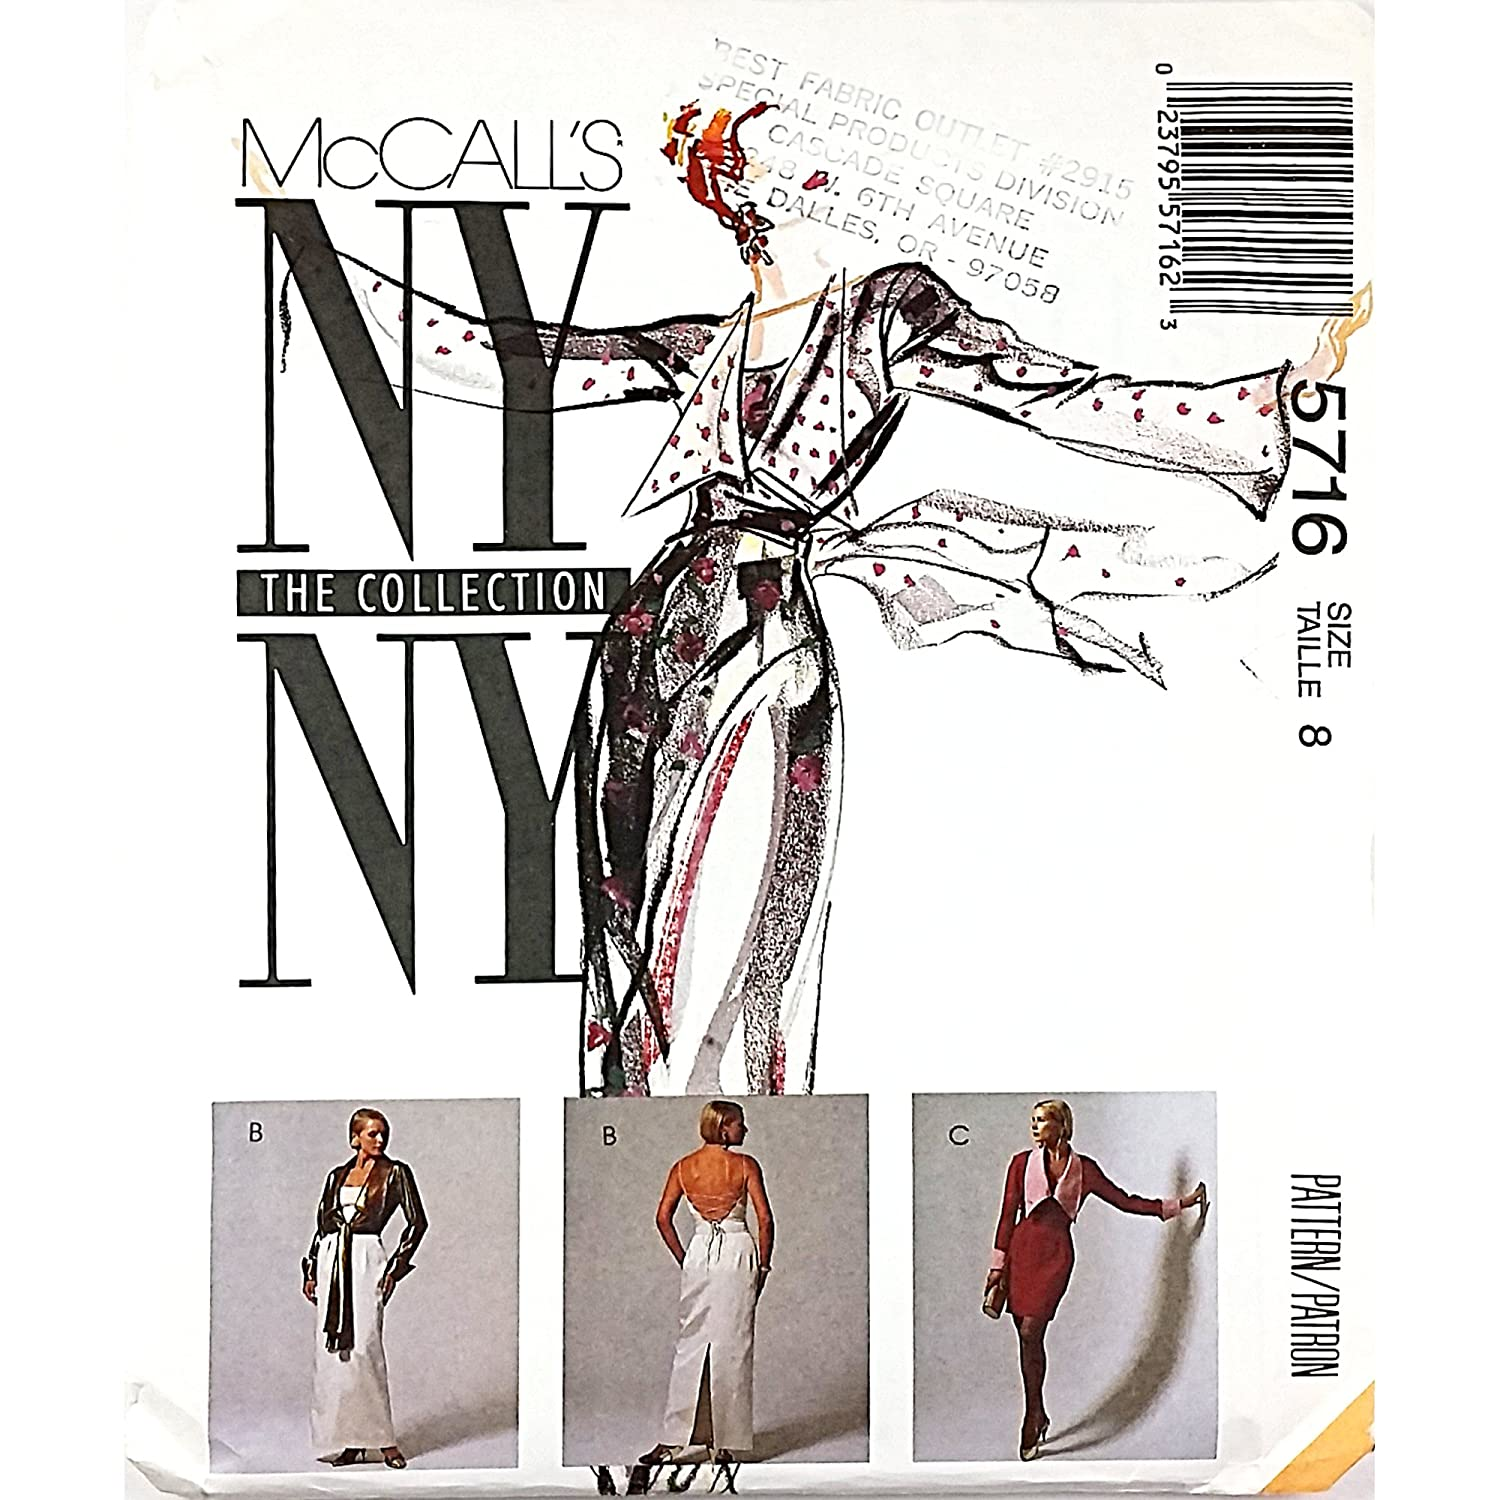 Amazon.com: McCalls The NY Collection 5716 Misses Unlined Wrap Jacket and Dress in Two Lengths Size 8: Arts, Crafts & Sewing